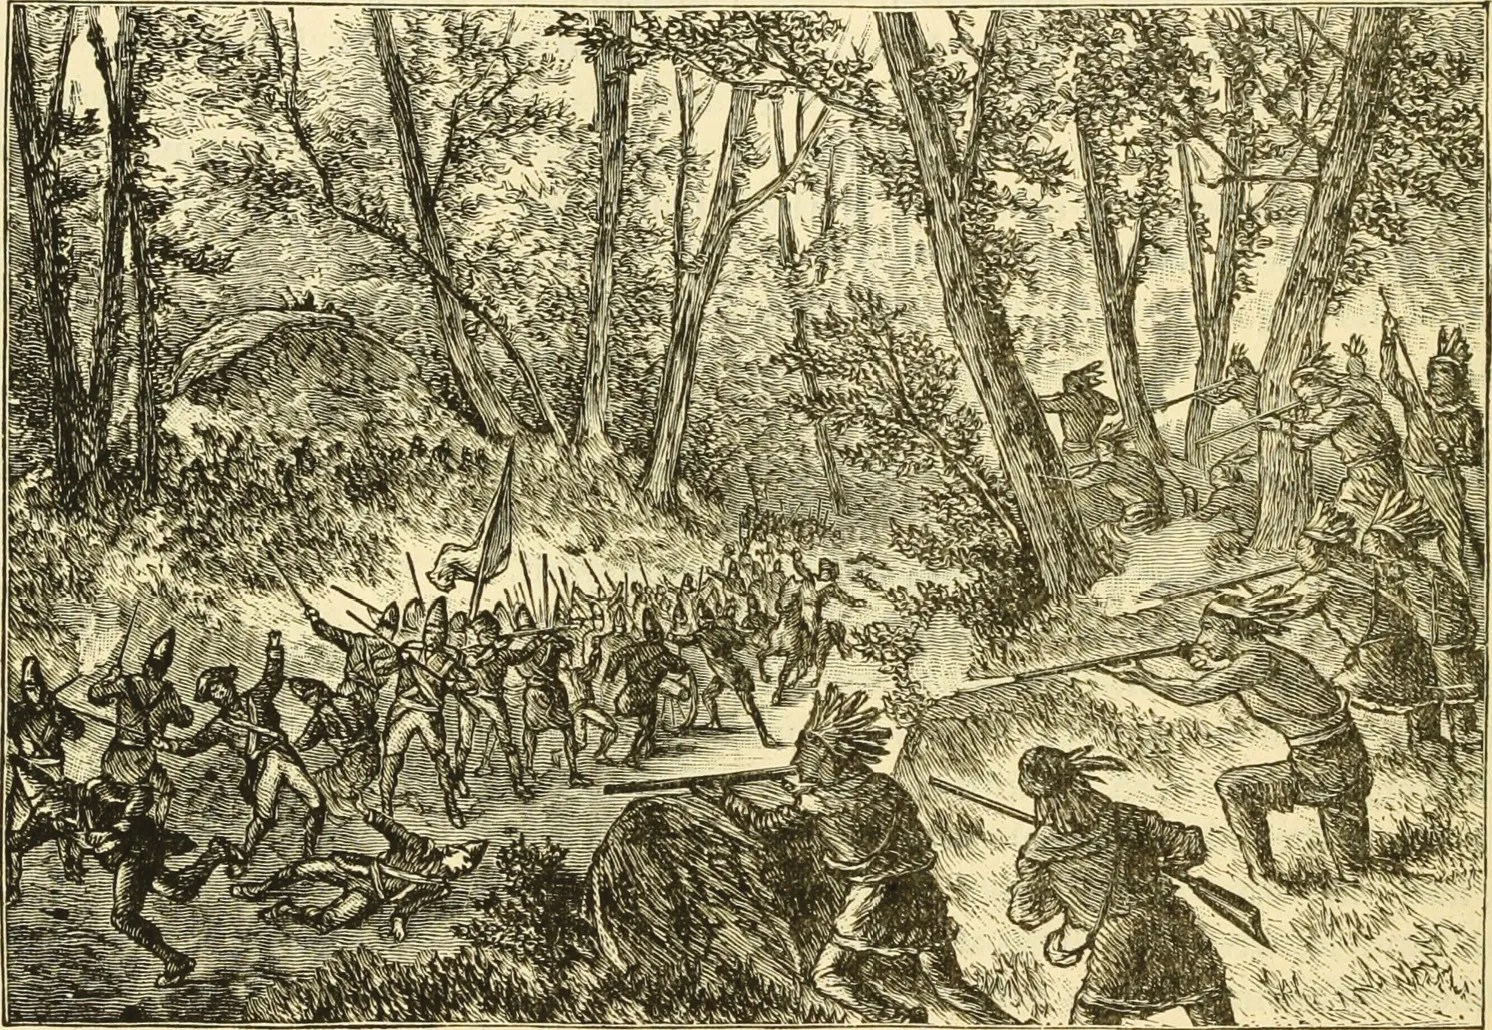 BELOW Most of Braddock's men found it difficult to identify targets, whereas they remained bunched together on the open track and fell steadily to the constant sniping from the trees.